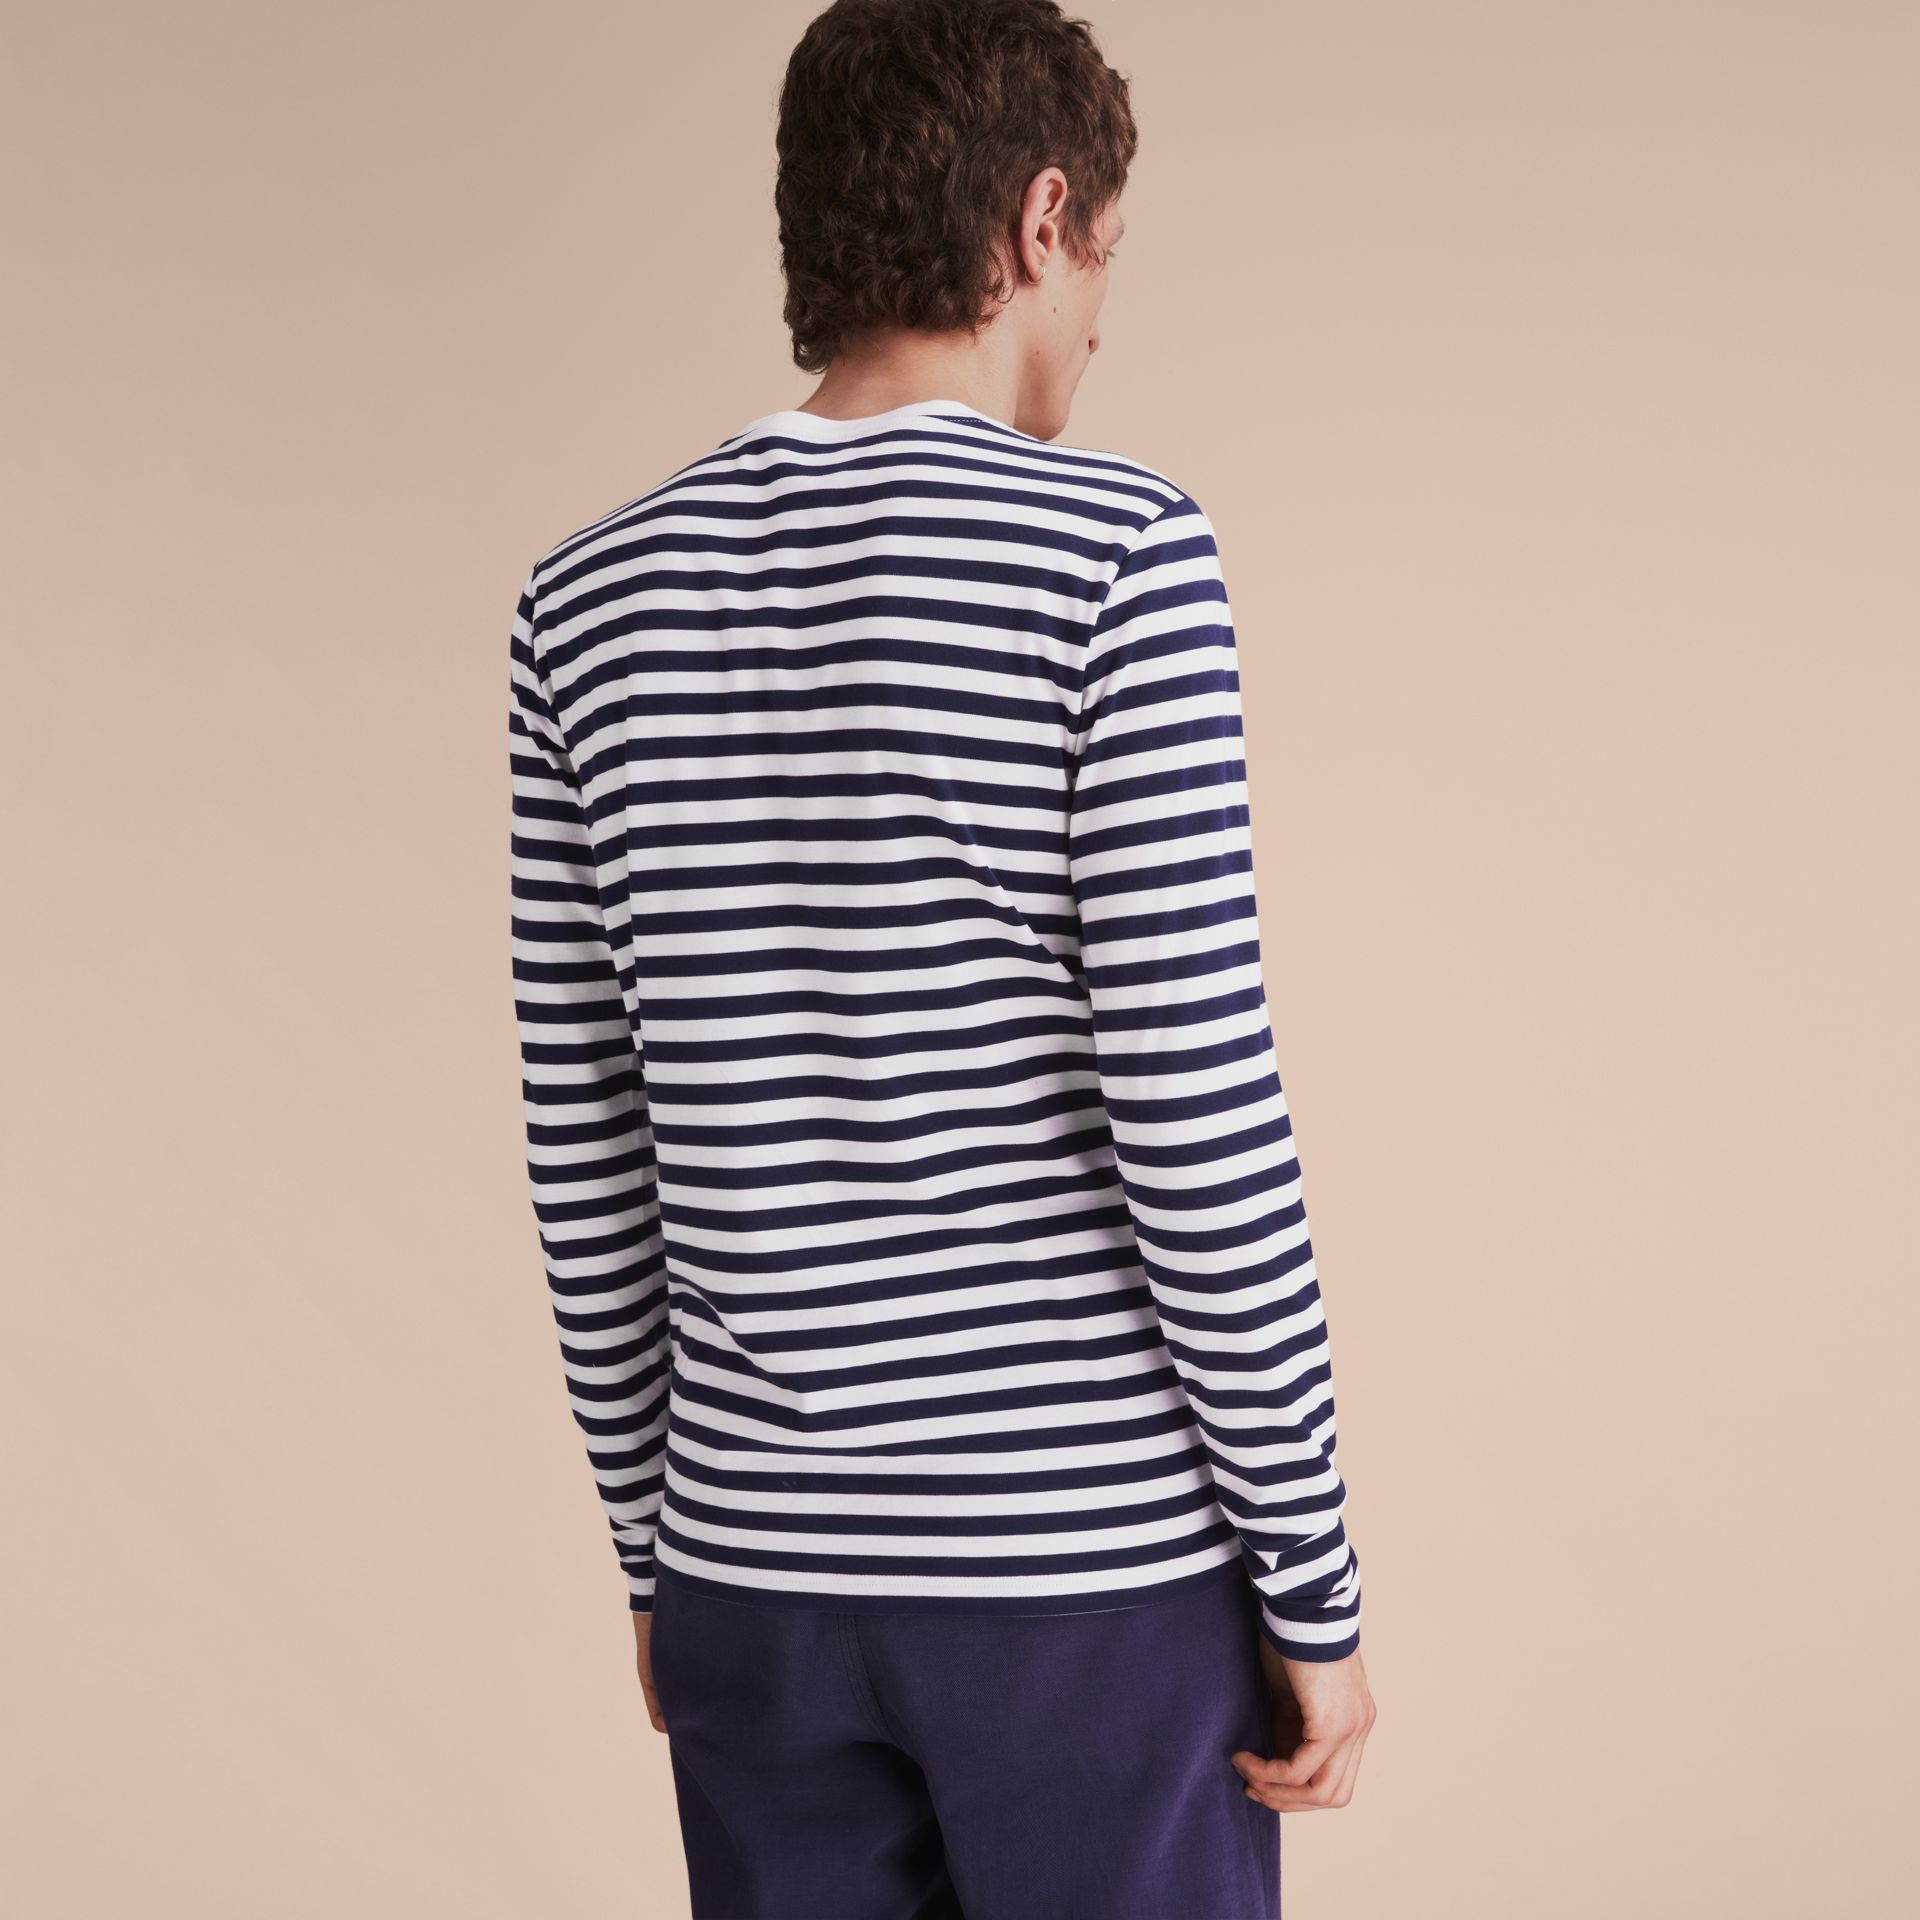 Unisex Breton Stripe Cotton Top with Lace Appliqué in Indigo - Men | Burberry - gallery image 5